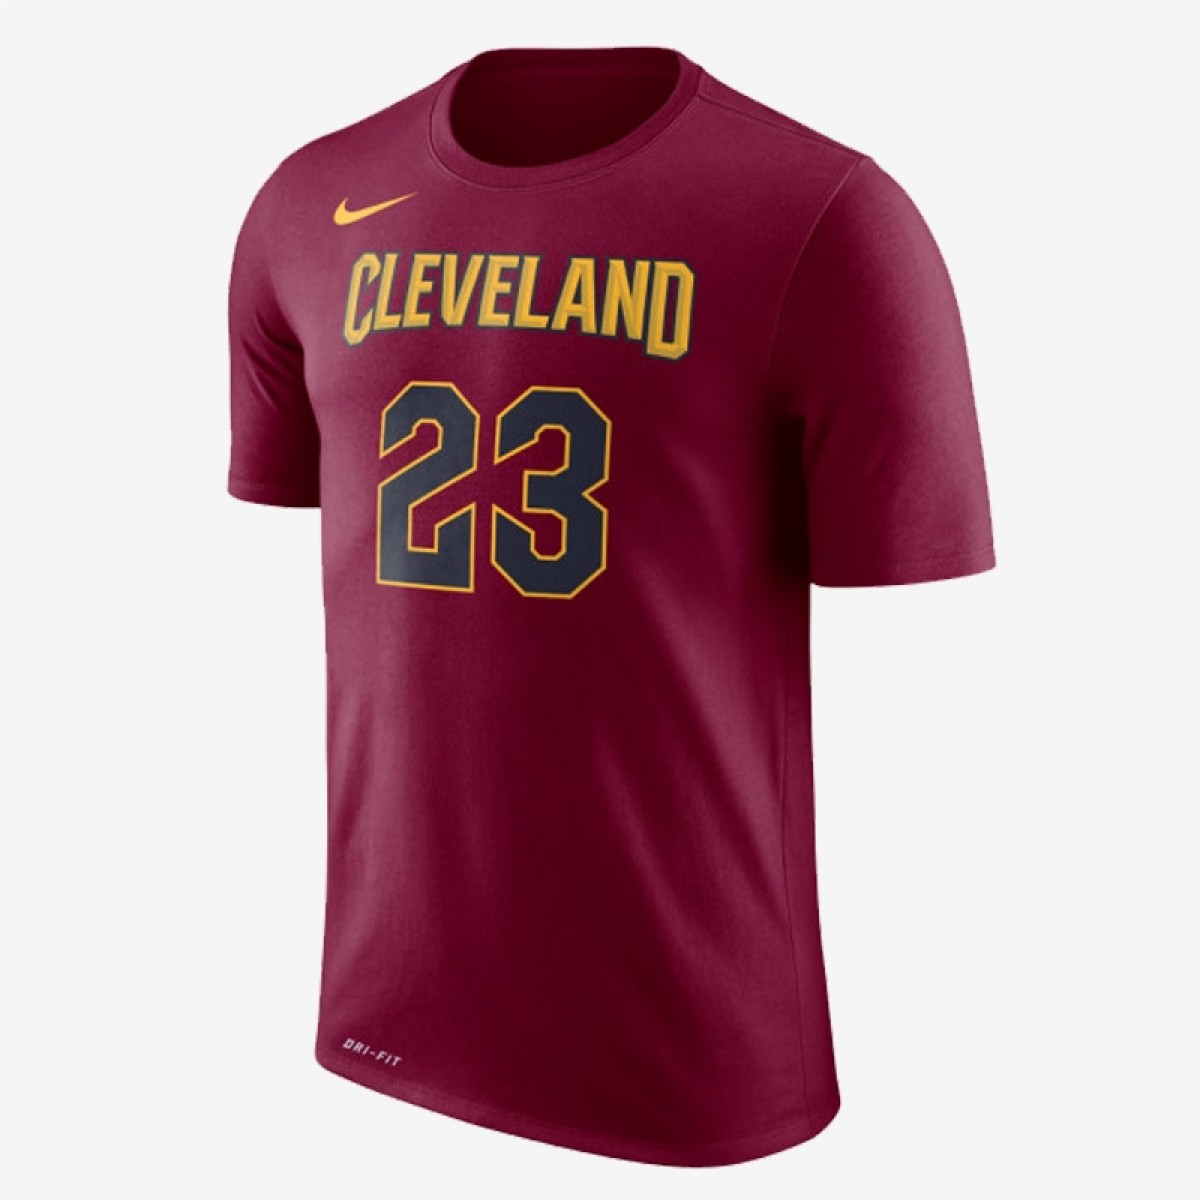 Nike Junior NBA Cleveland Cavaliers Nick Name Tee James 'City Edition'